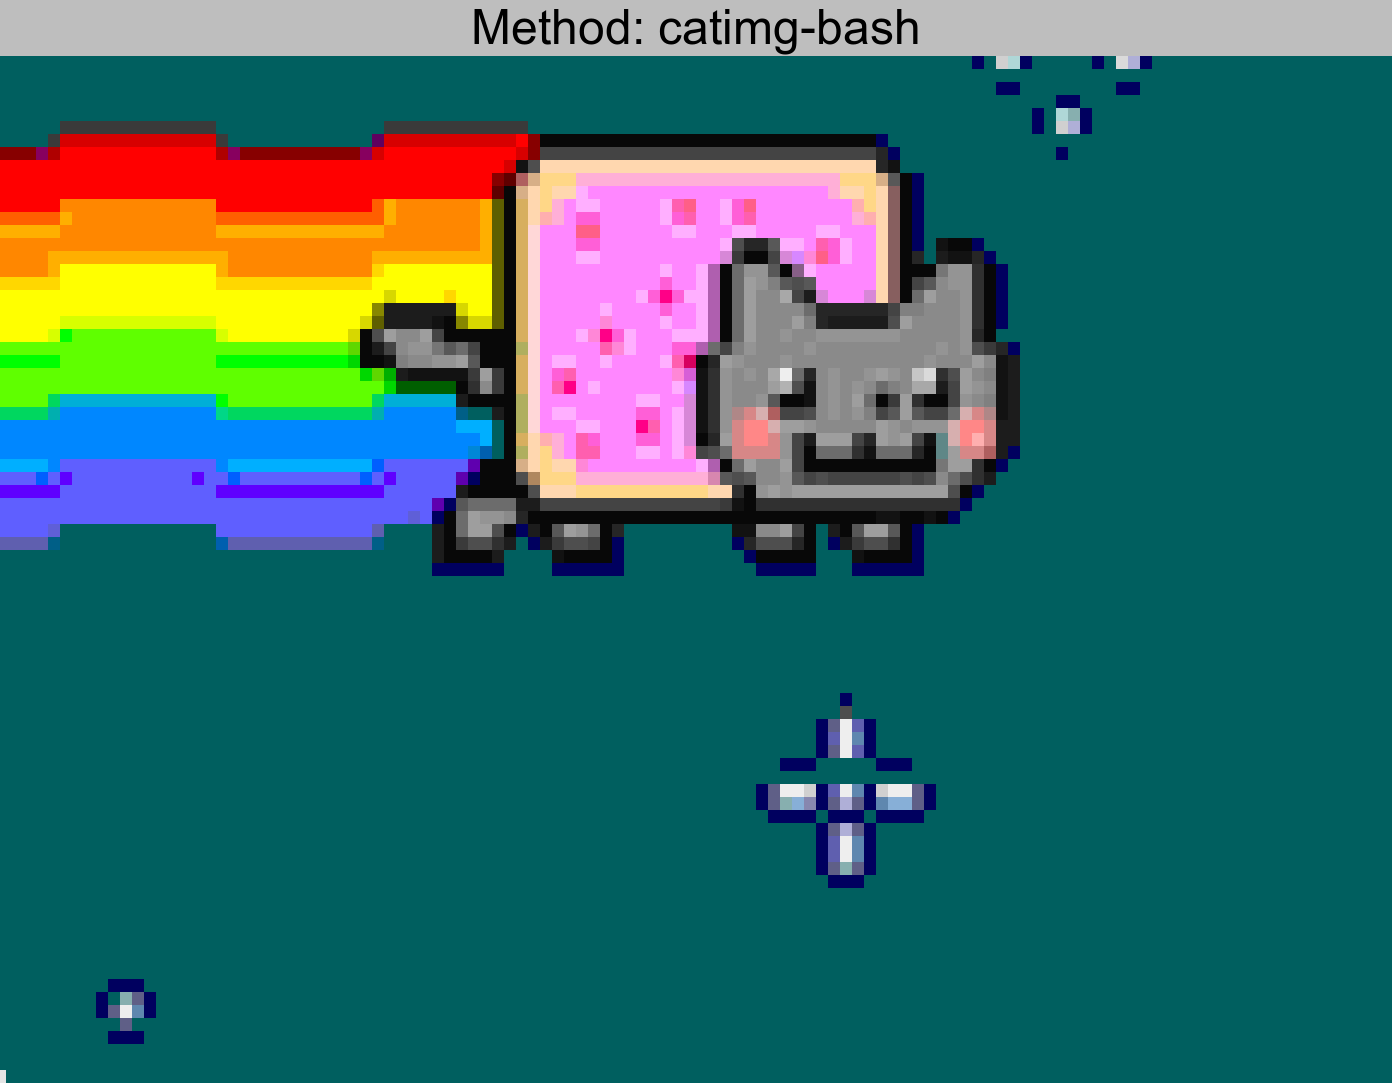 nyan.png converted using catimg-bash